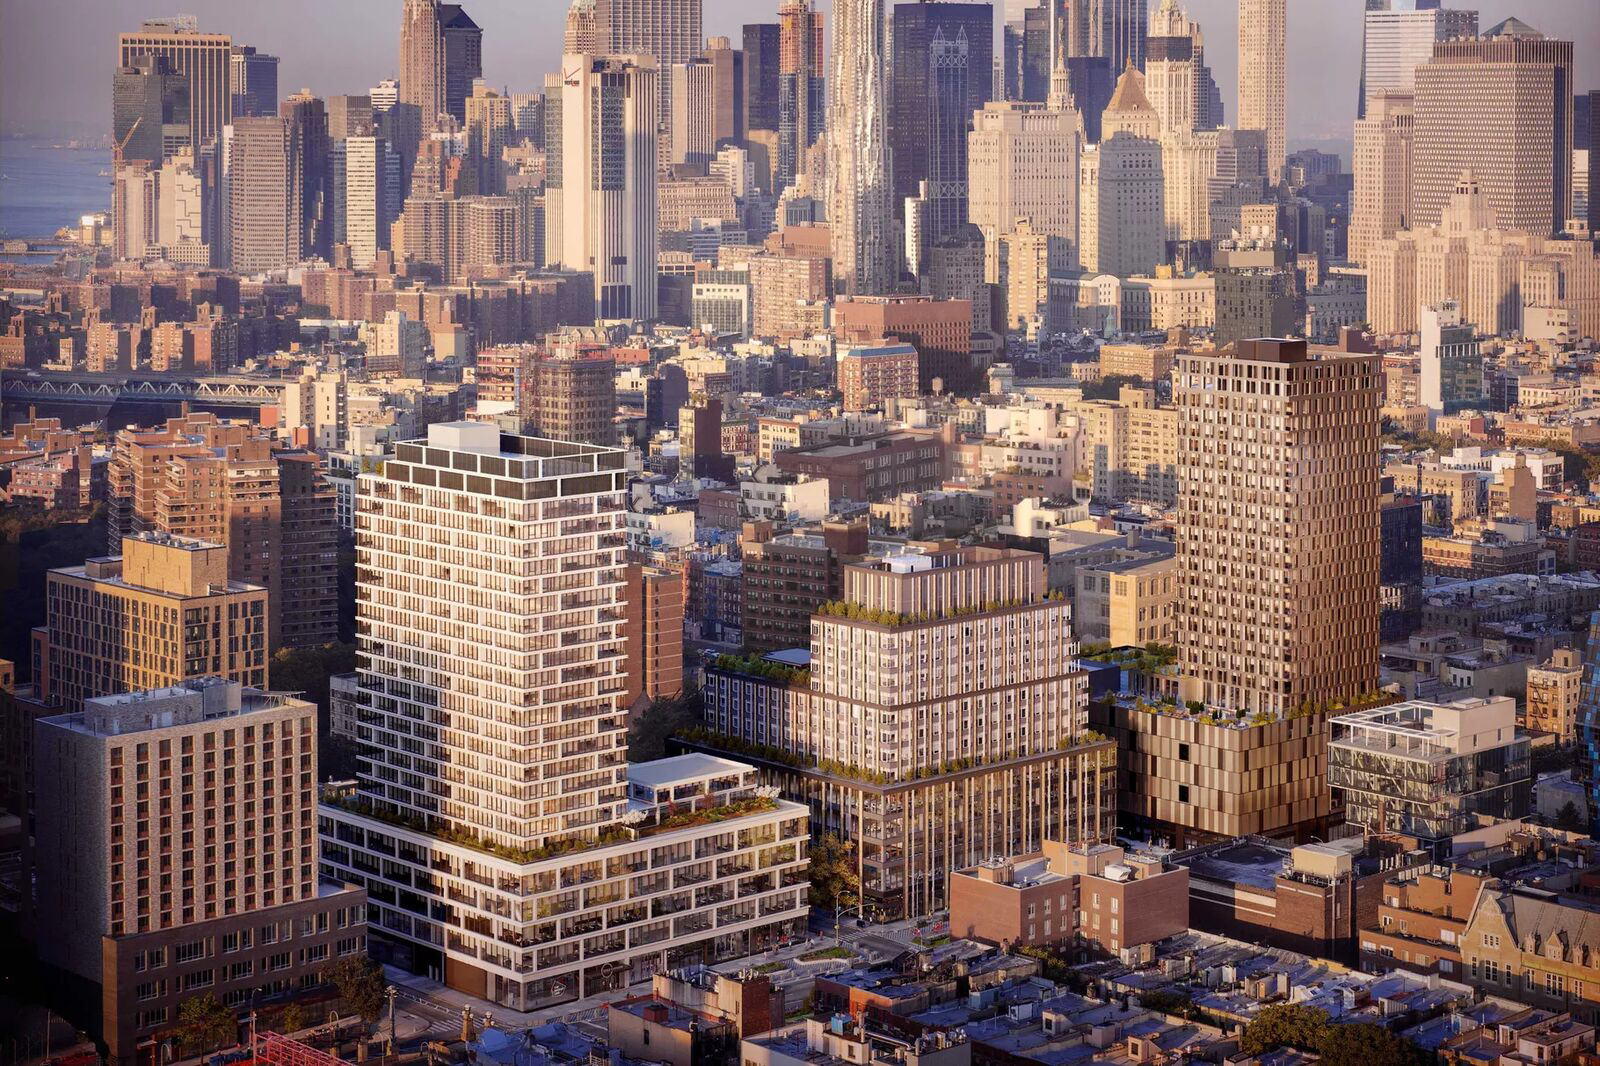 Essex Crossing Rendering by Moso Studios